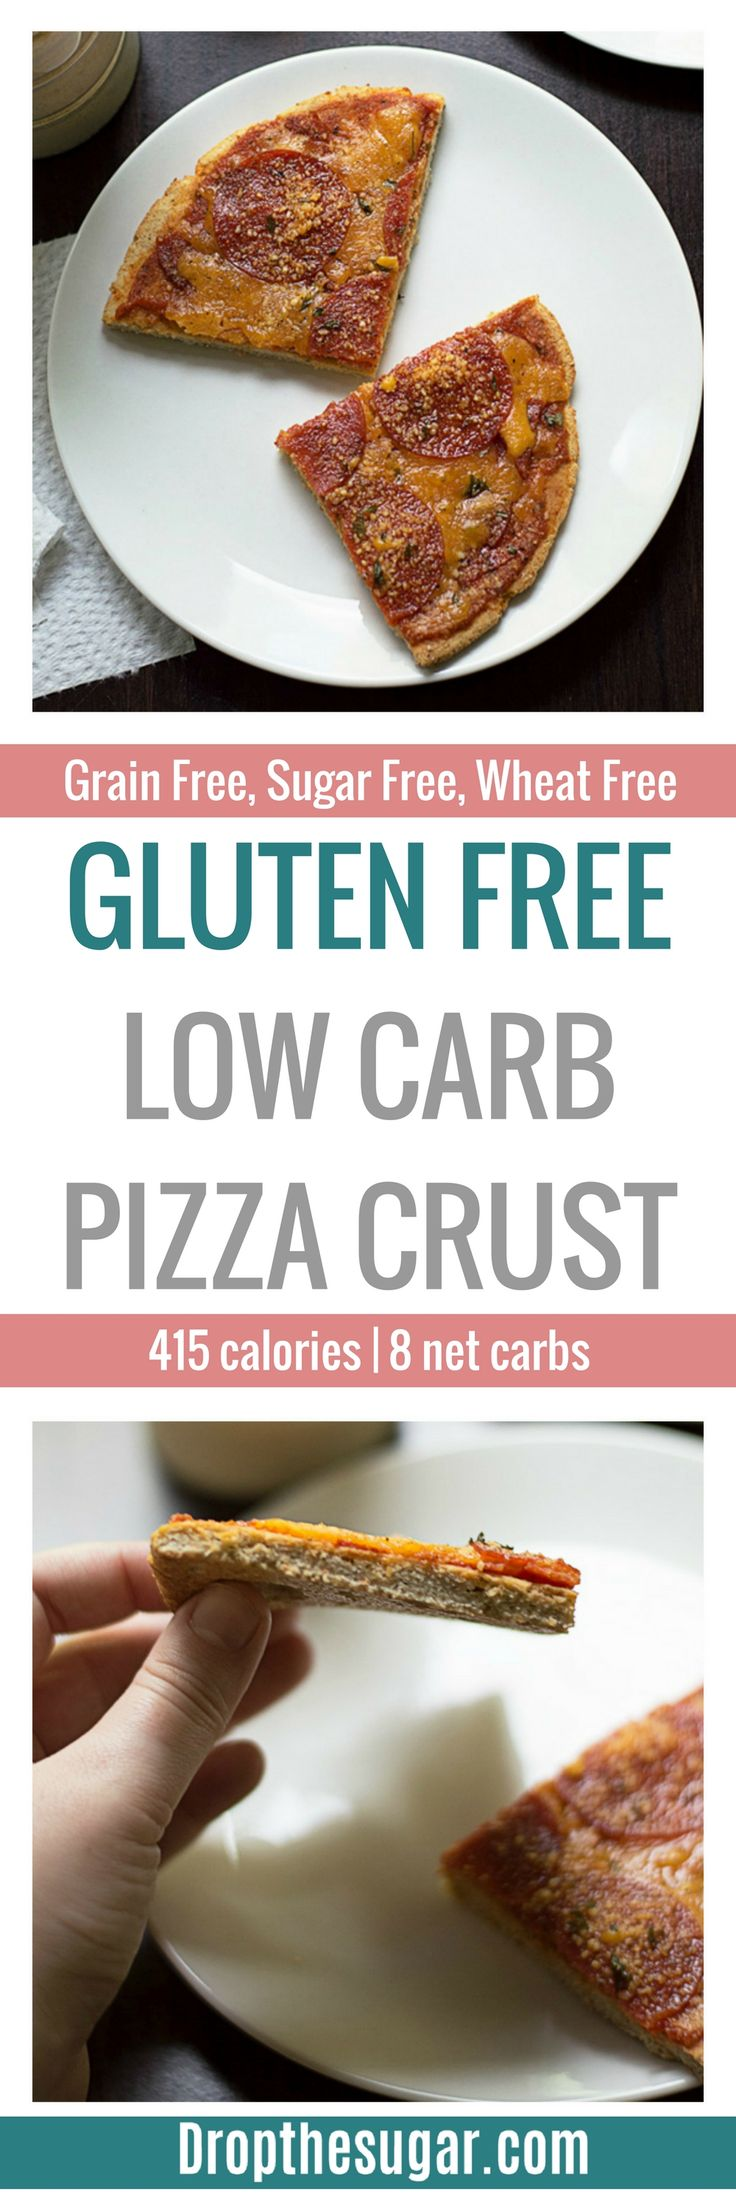 Gluten Free Low Carb Pizza Crust | a coconut flour pizza crust recipe that doesn't taste like eggs! Plus, this includes psyllium husk powder to add even more fiber and taste. Pin now to make later!